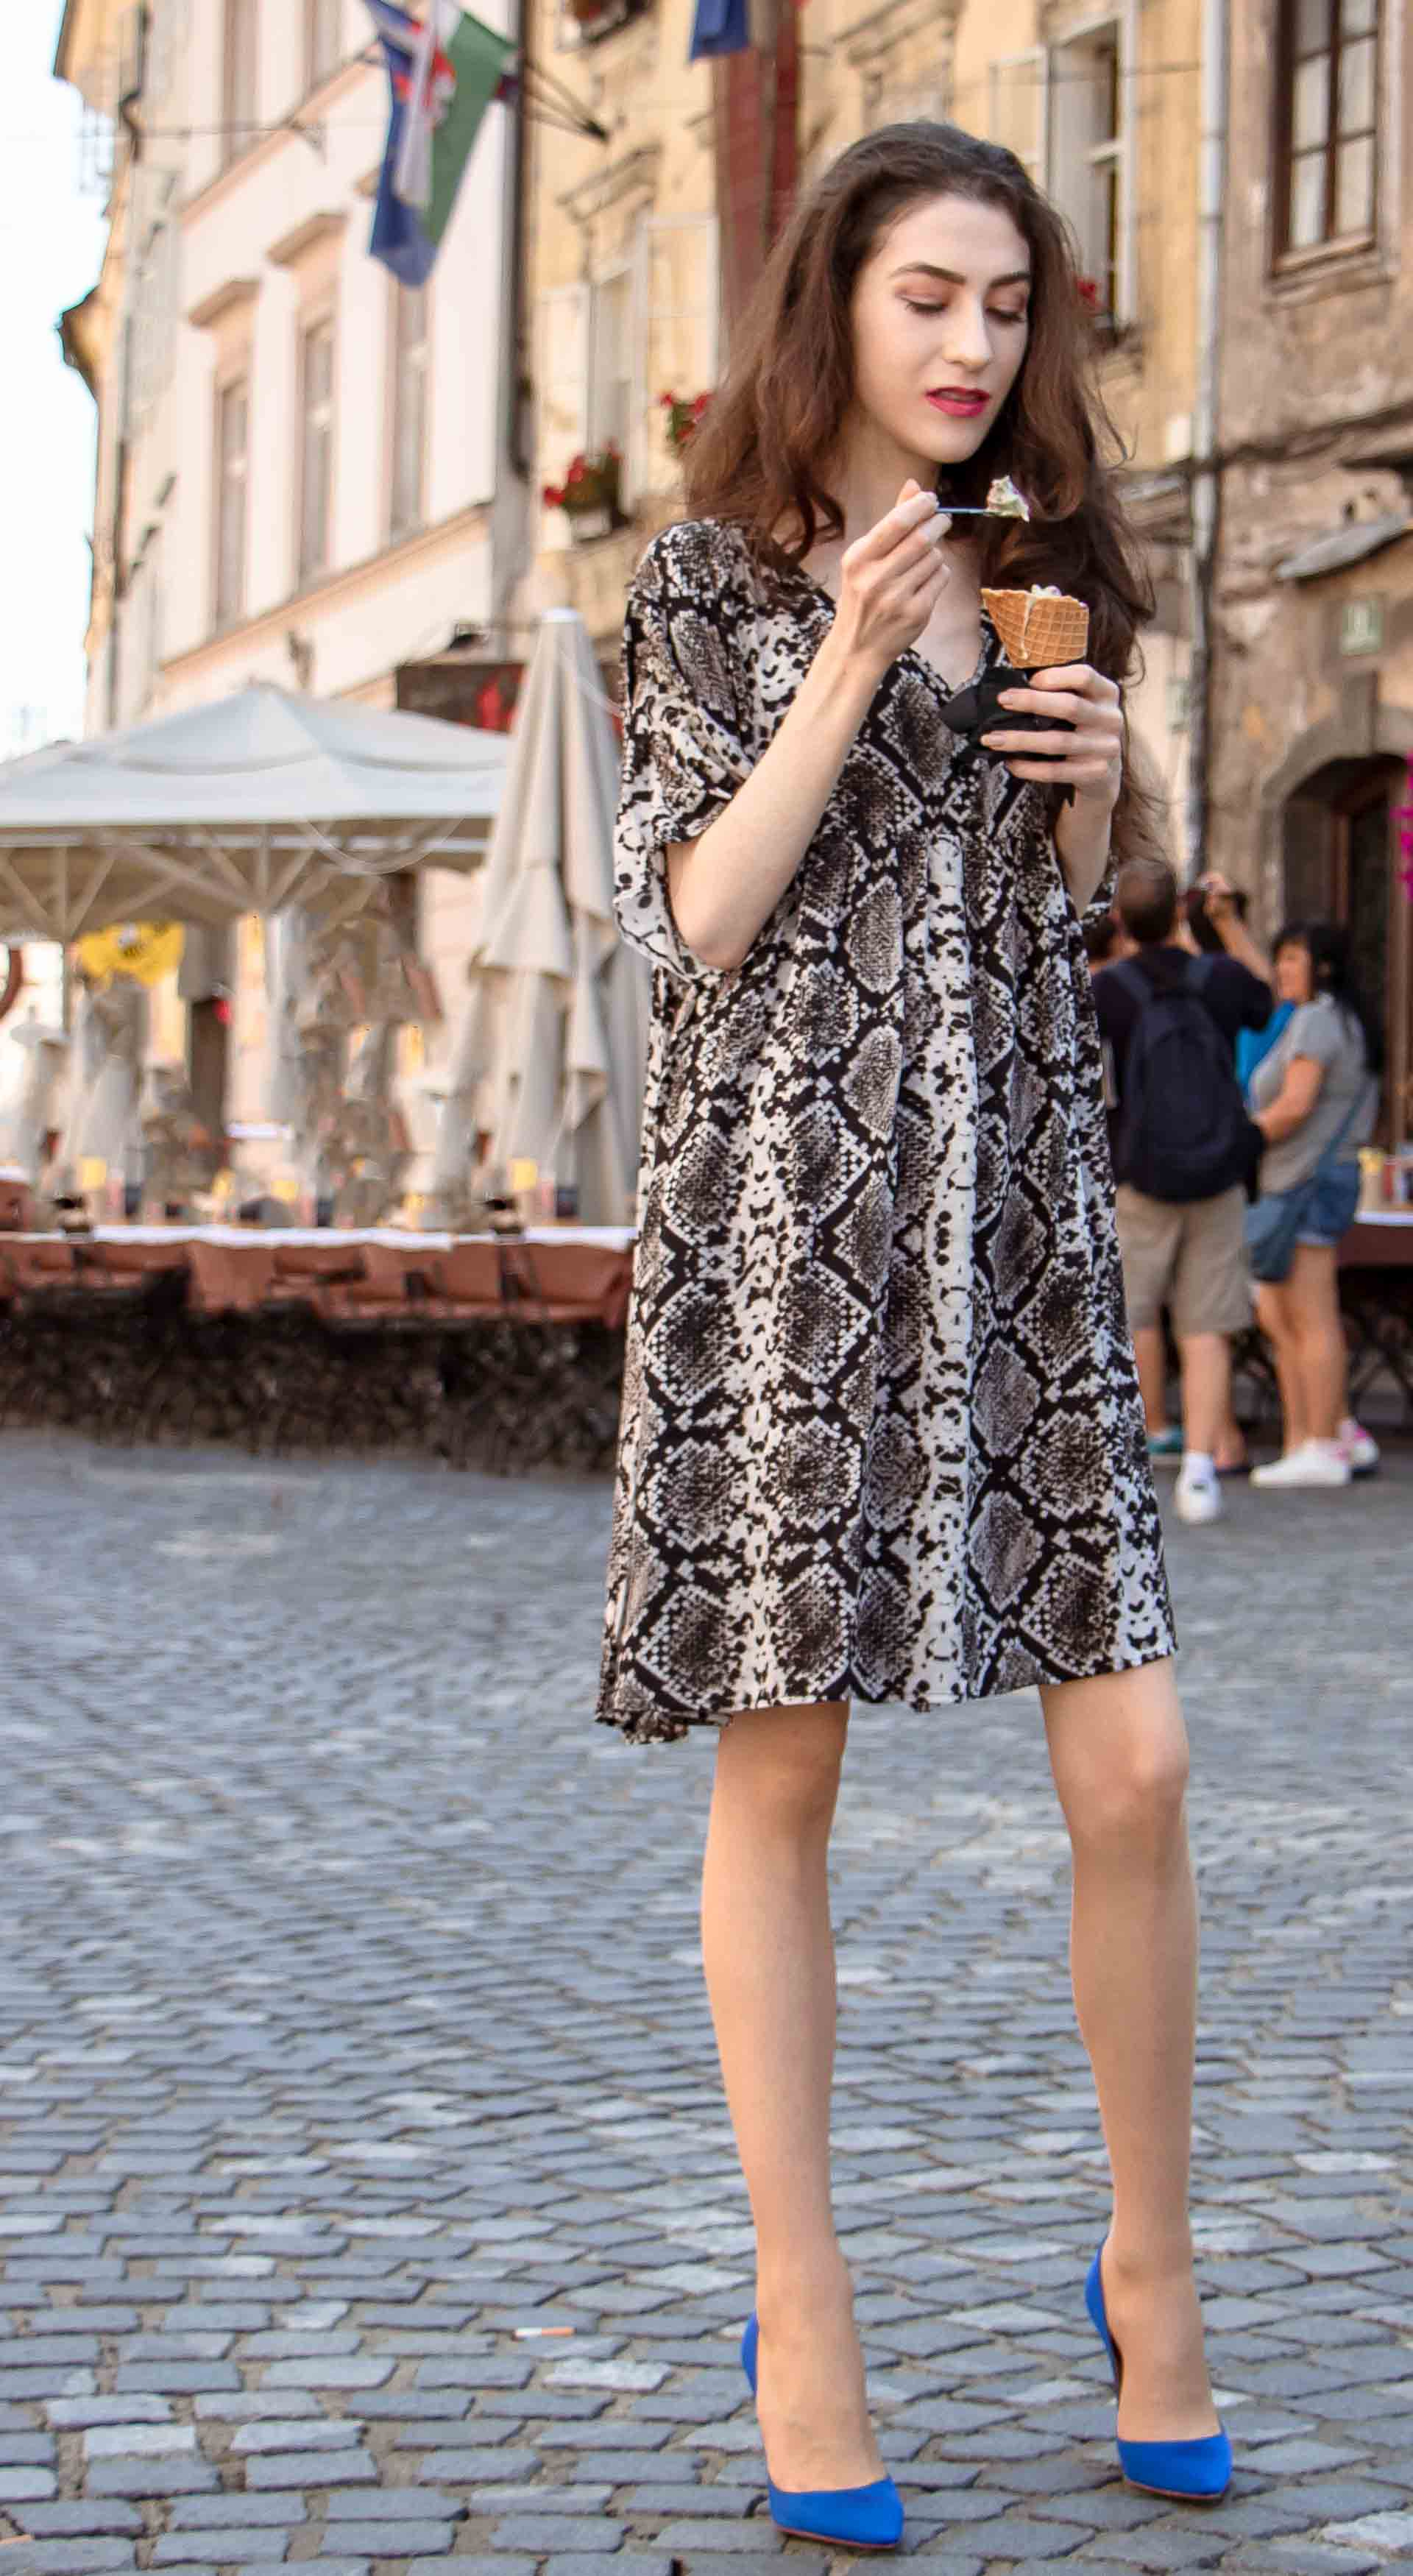 Beautiful Slovenian Fashion Blogger Veronika Lipar of Brunette from Wall wearing flowing short snake print dress from Zara, blue Gianvito Rossi satin pumps, eating ice cream on the street